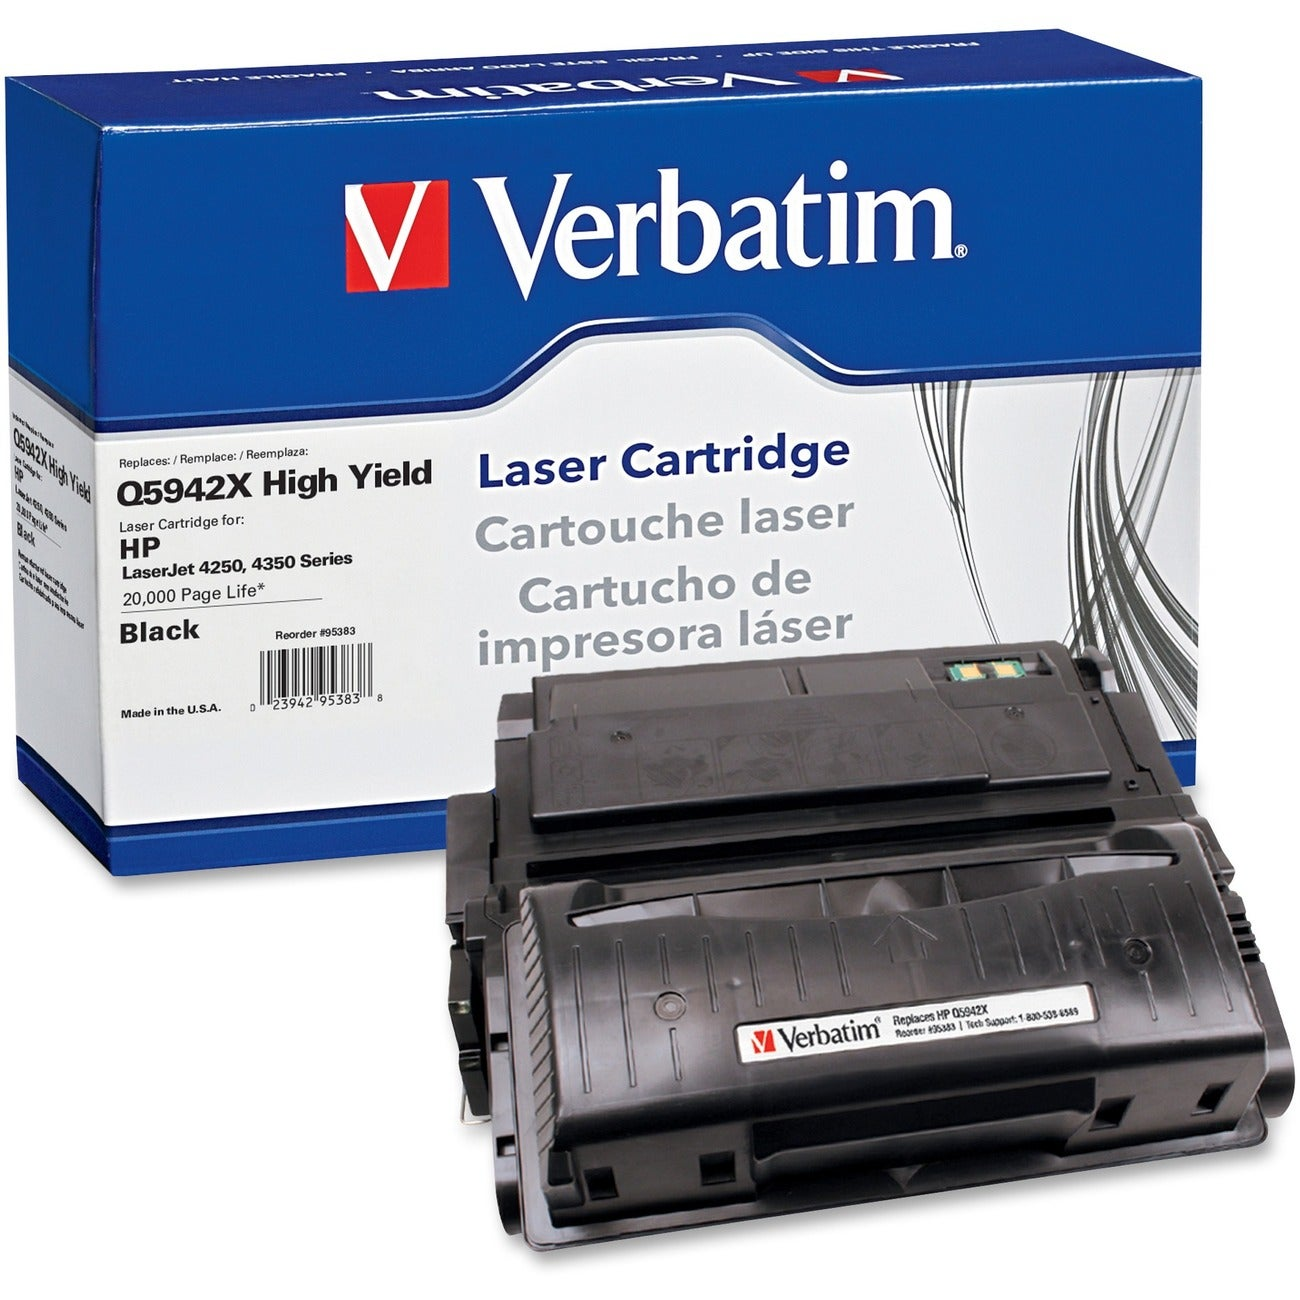 Verbatim Black Toner Cartridge - Thumbnail 0